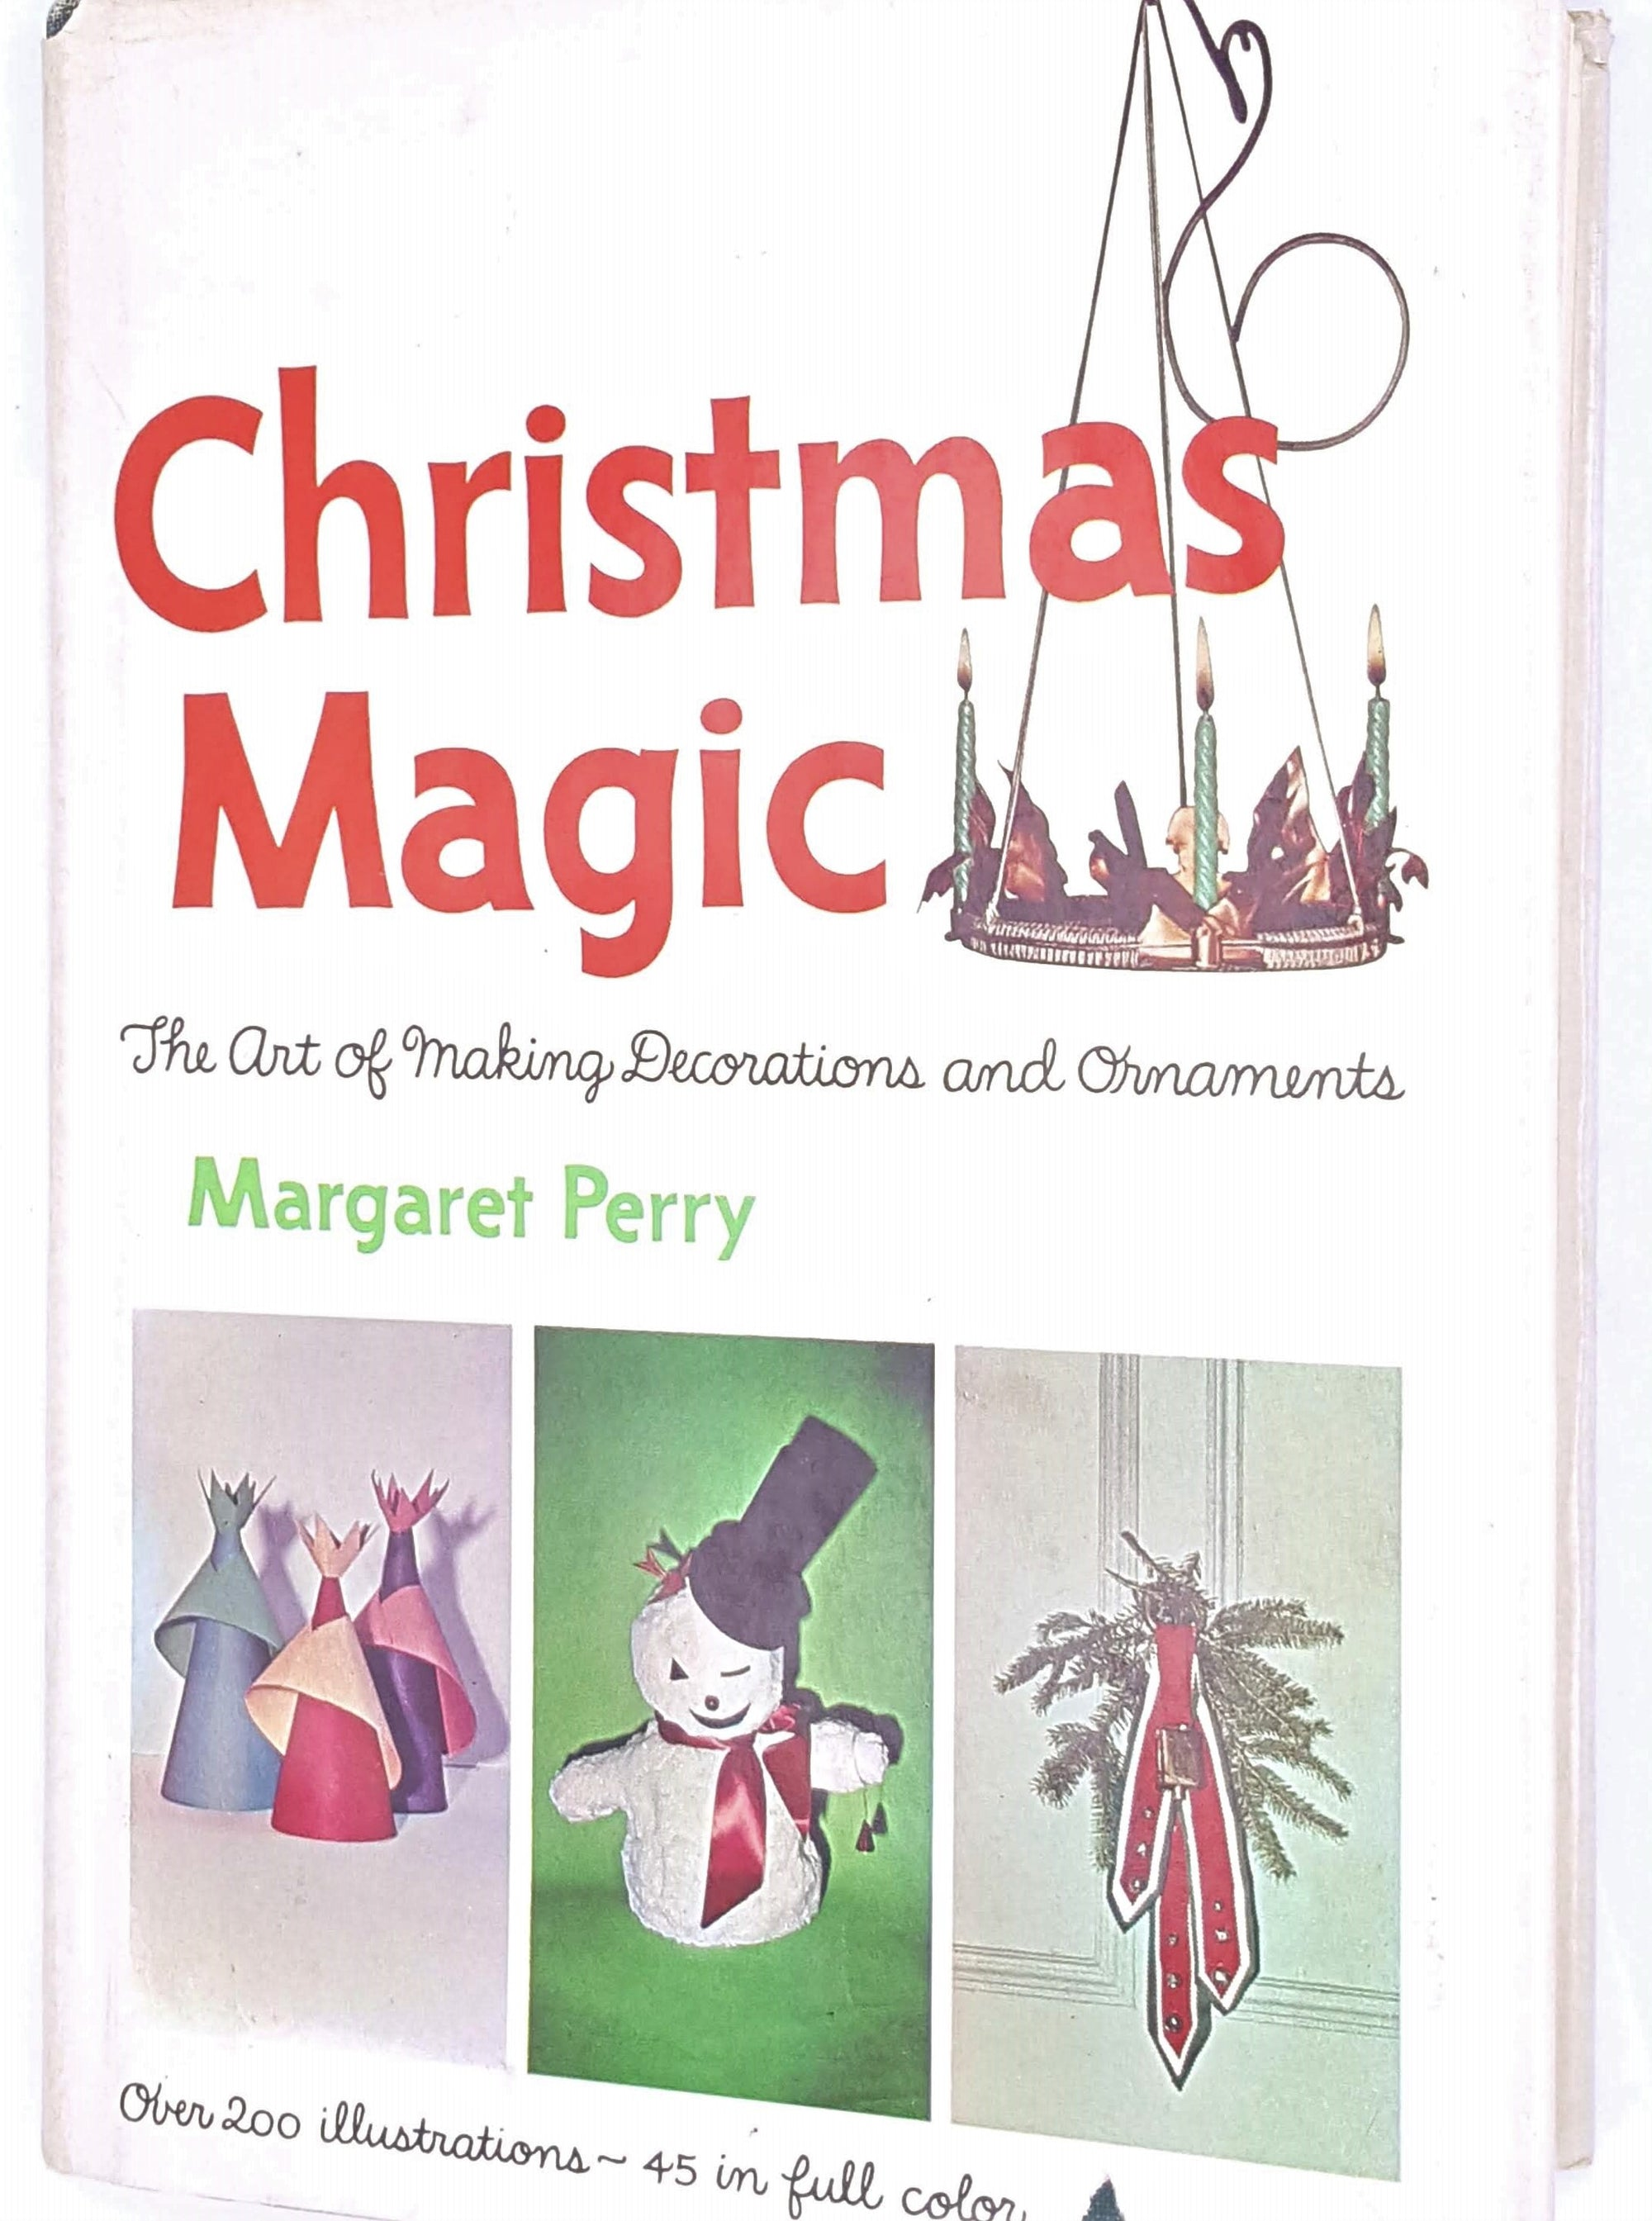 Christmas Magic by Margaret Perry 1964